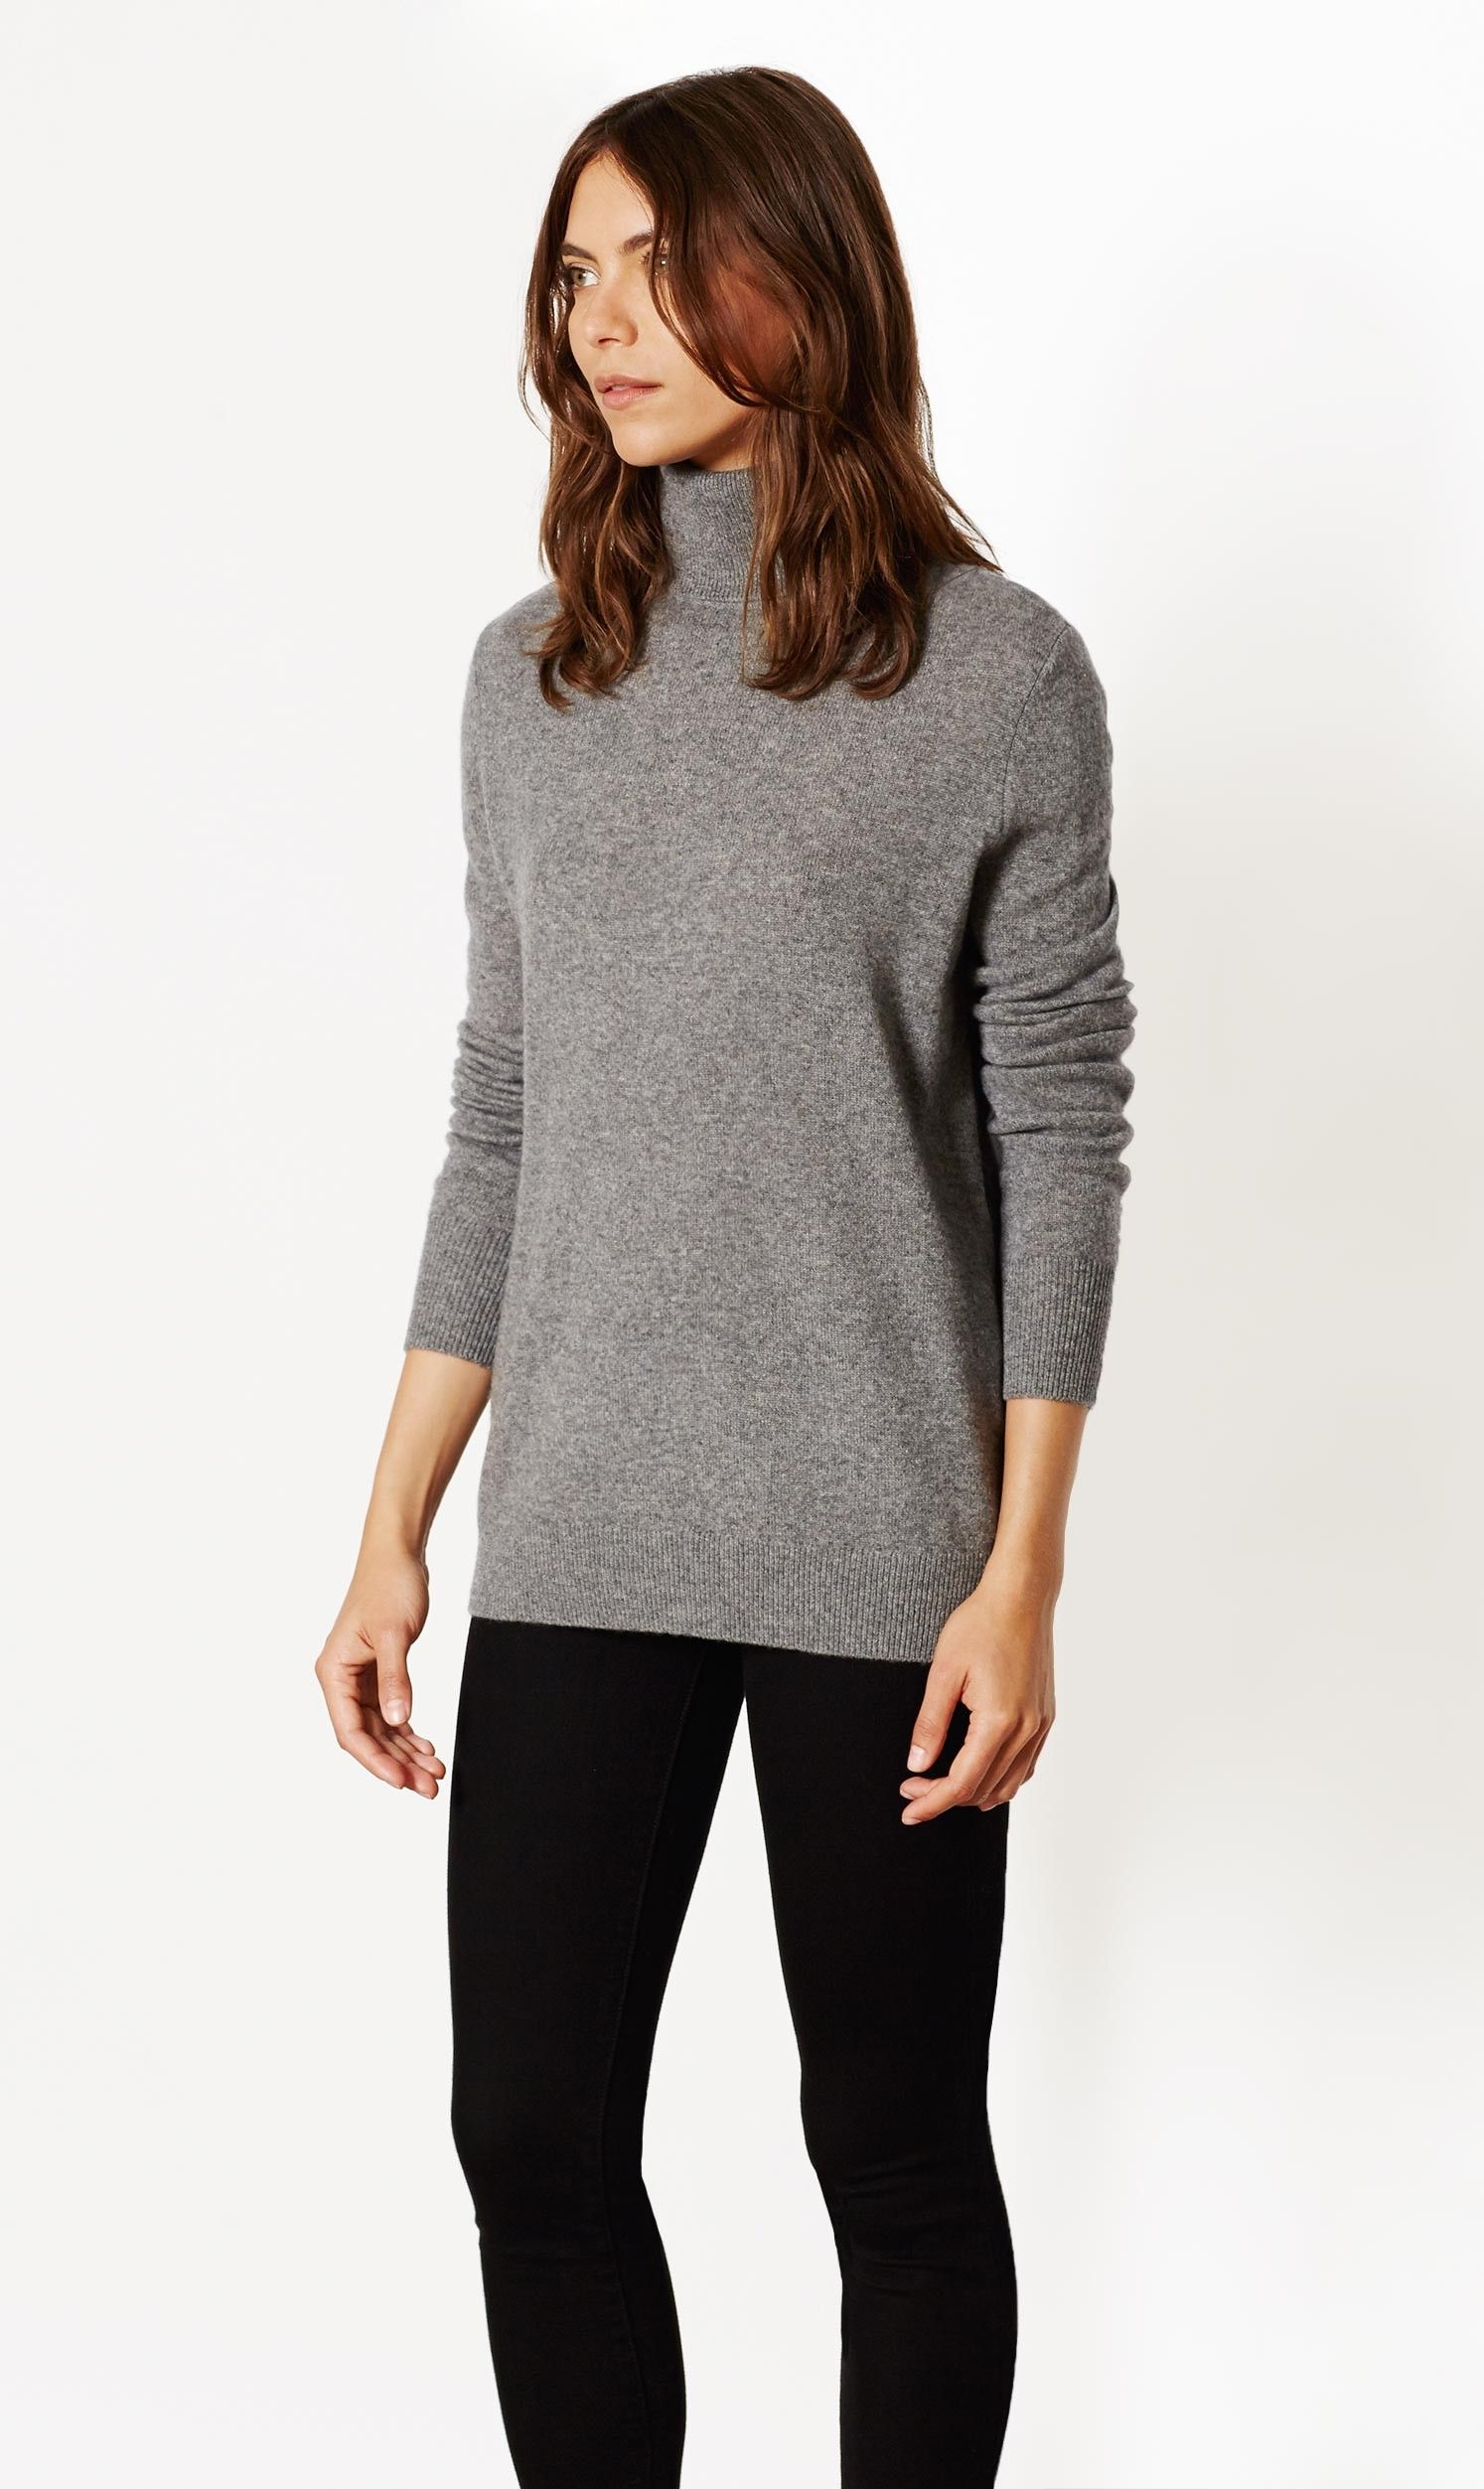 Oscar cashmere turtleneck | Cashmere sweaters and Cashmere